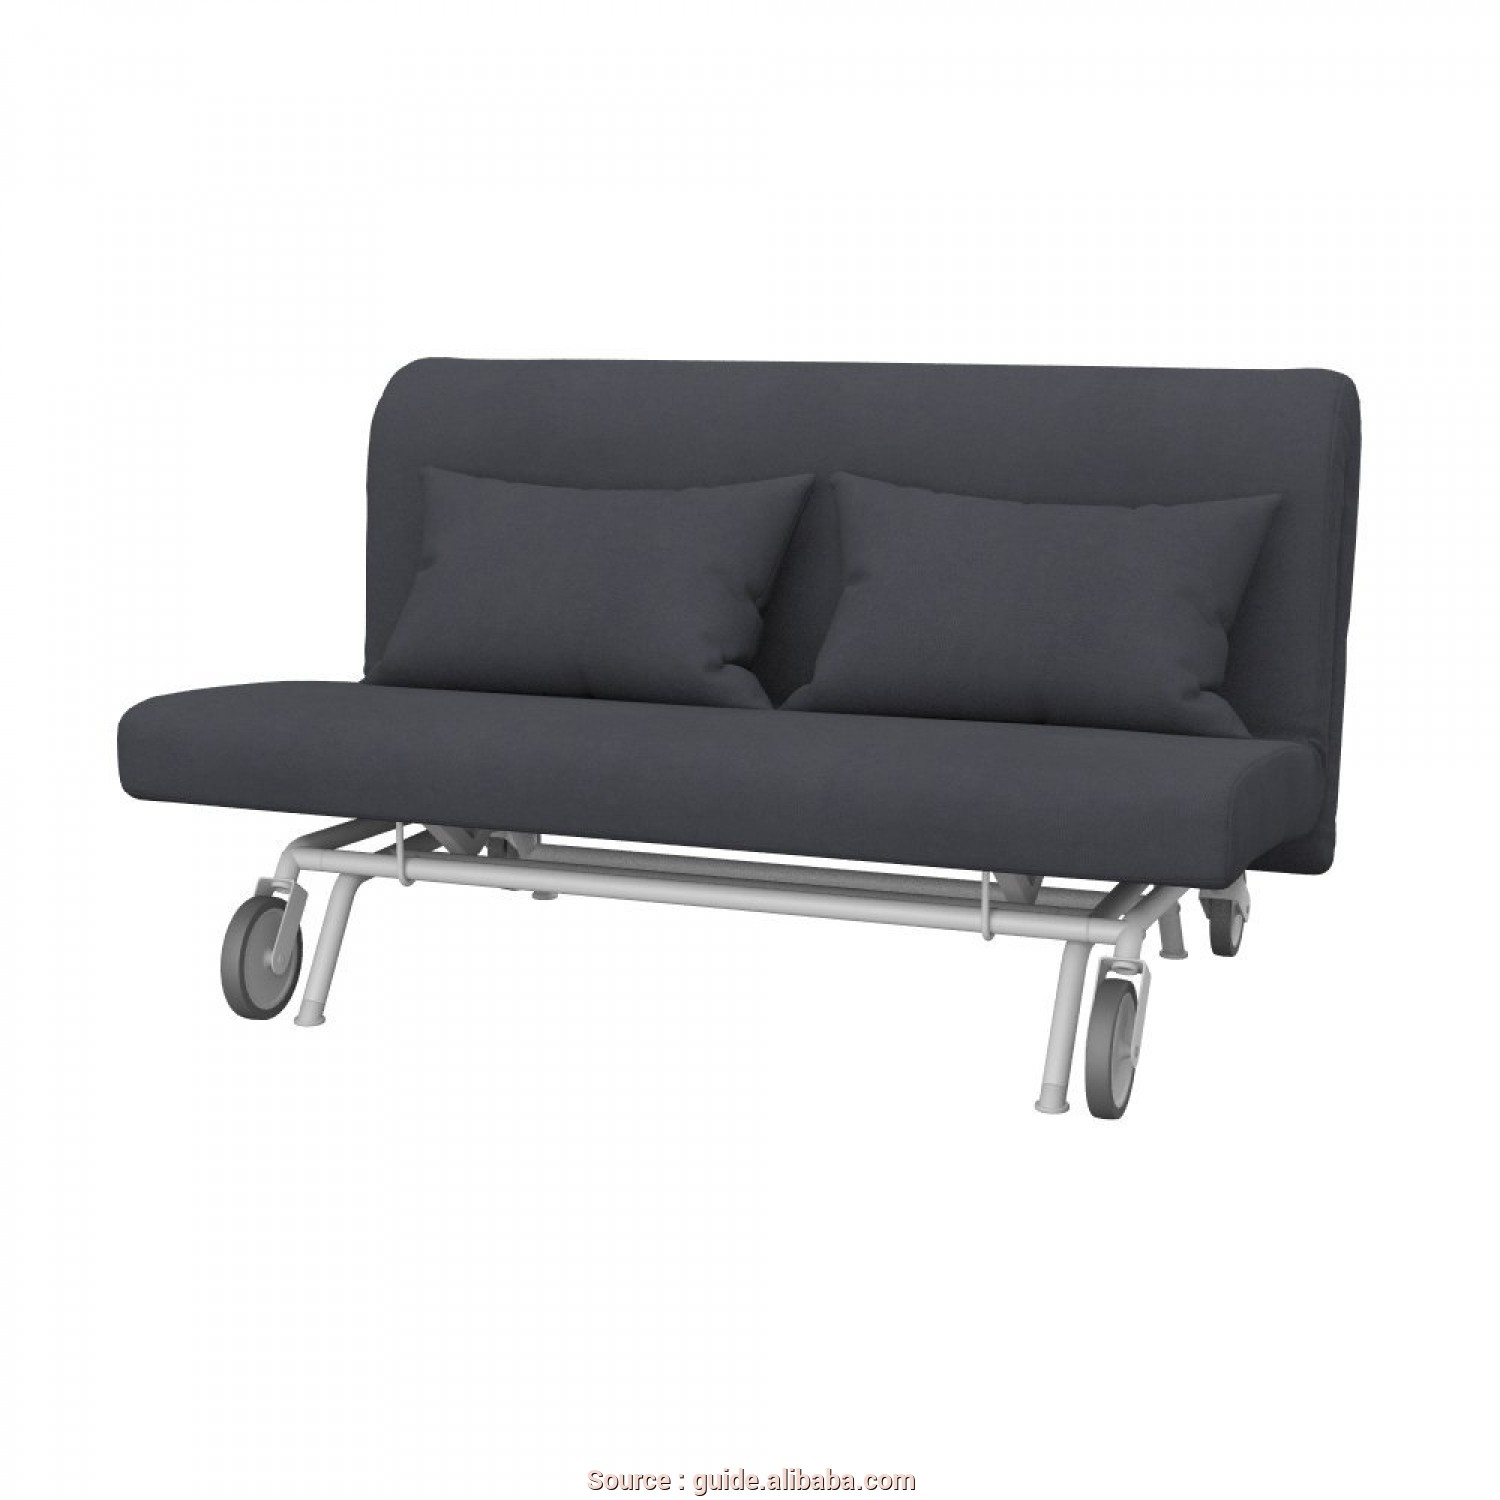 Ikea Backabro Test, Eccezionale Get Quotations · Soferia, IKEA IKEA PS Sofa 2-Seat Sofa-Bed Cover,, Leather